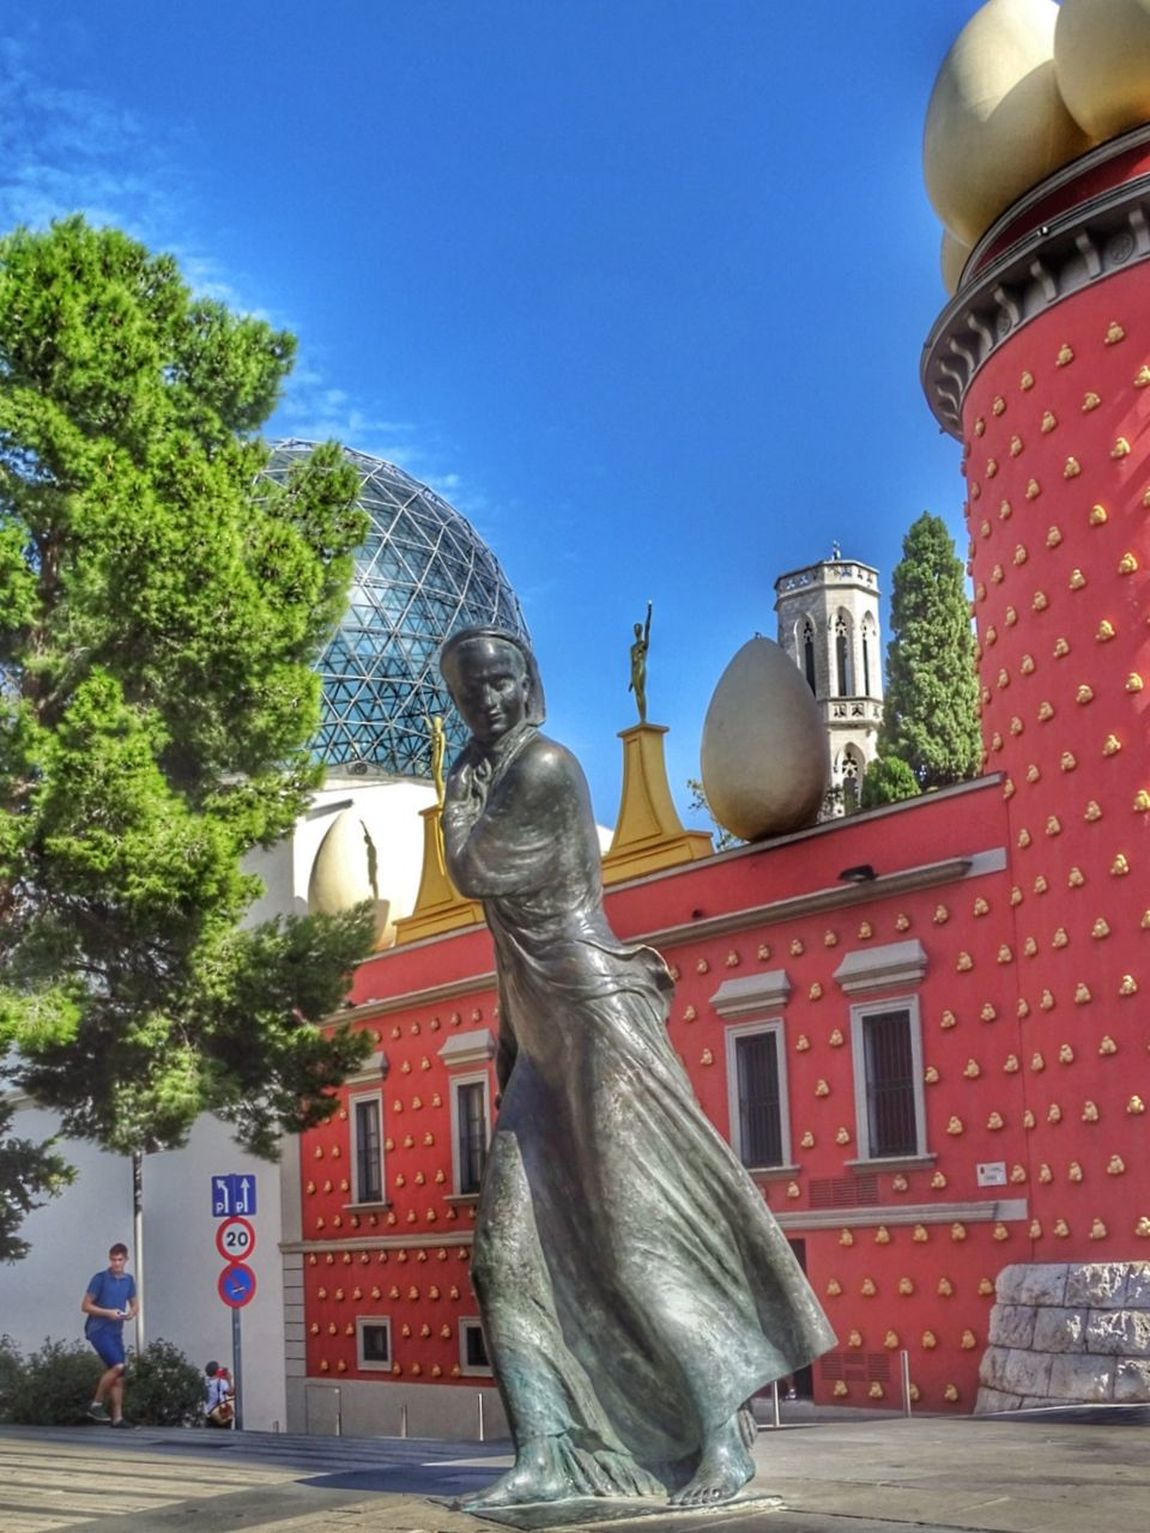 Statue Sculpture Architecture City Tree No People Blue Outdoors Building Exterior Built Structure Water Sky Day España🇪🇸 Your Ticket To Europe Women Old Architecture Dalí Dali Museum Travel Destinations España Multi Colored Street Photo Steetphotograhy Hdrphotography